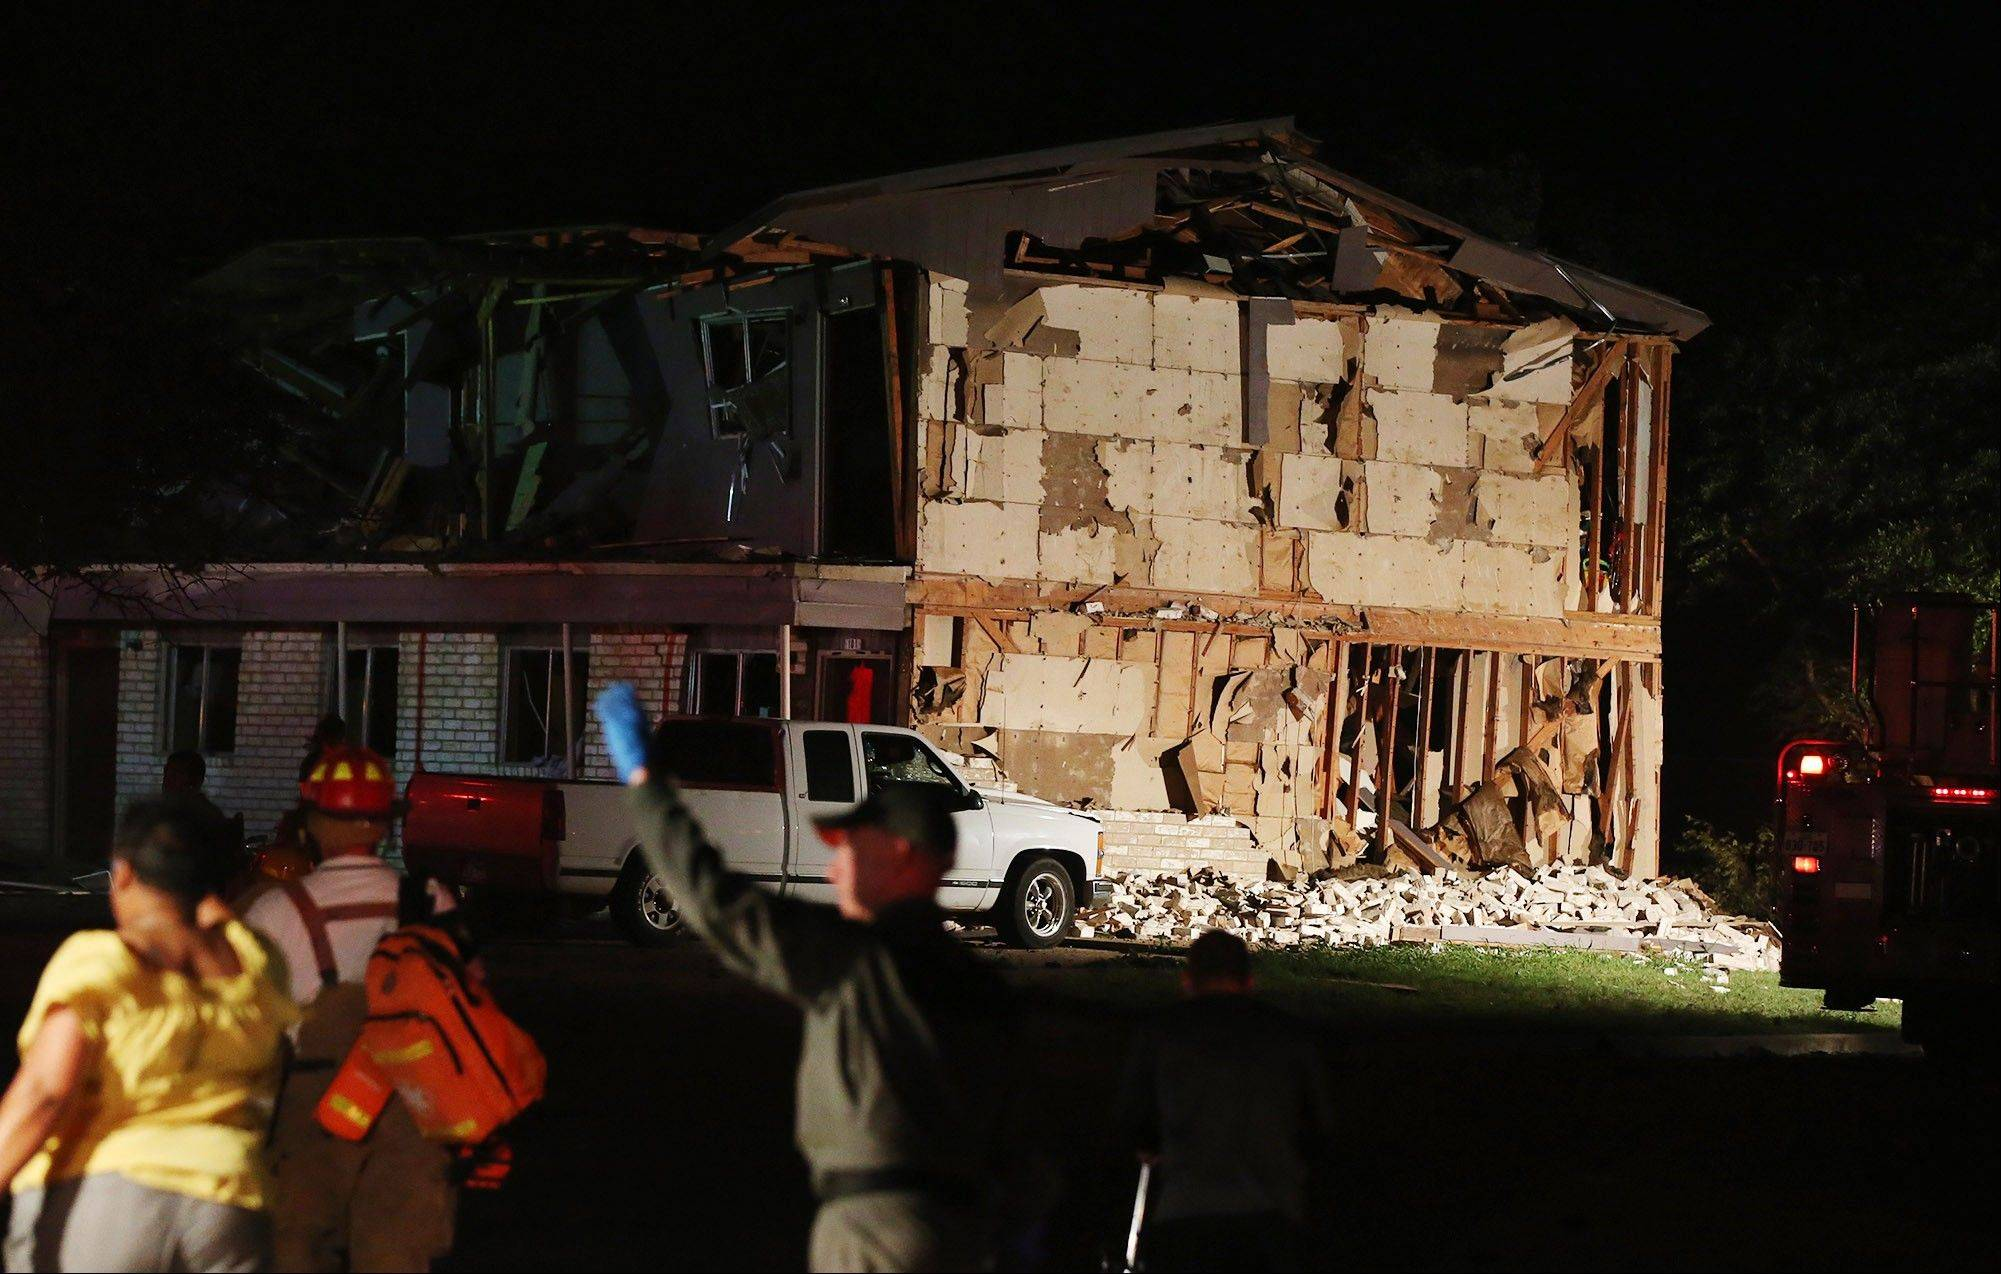 Rescue workers work near a damaged apartment complex after a nearby fertilizer plant exploded Wednesday.